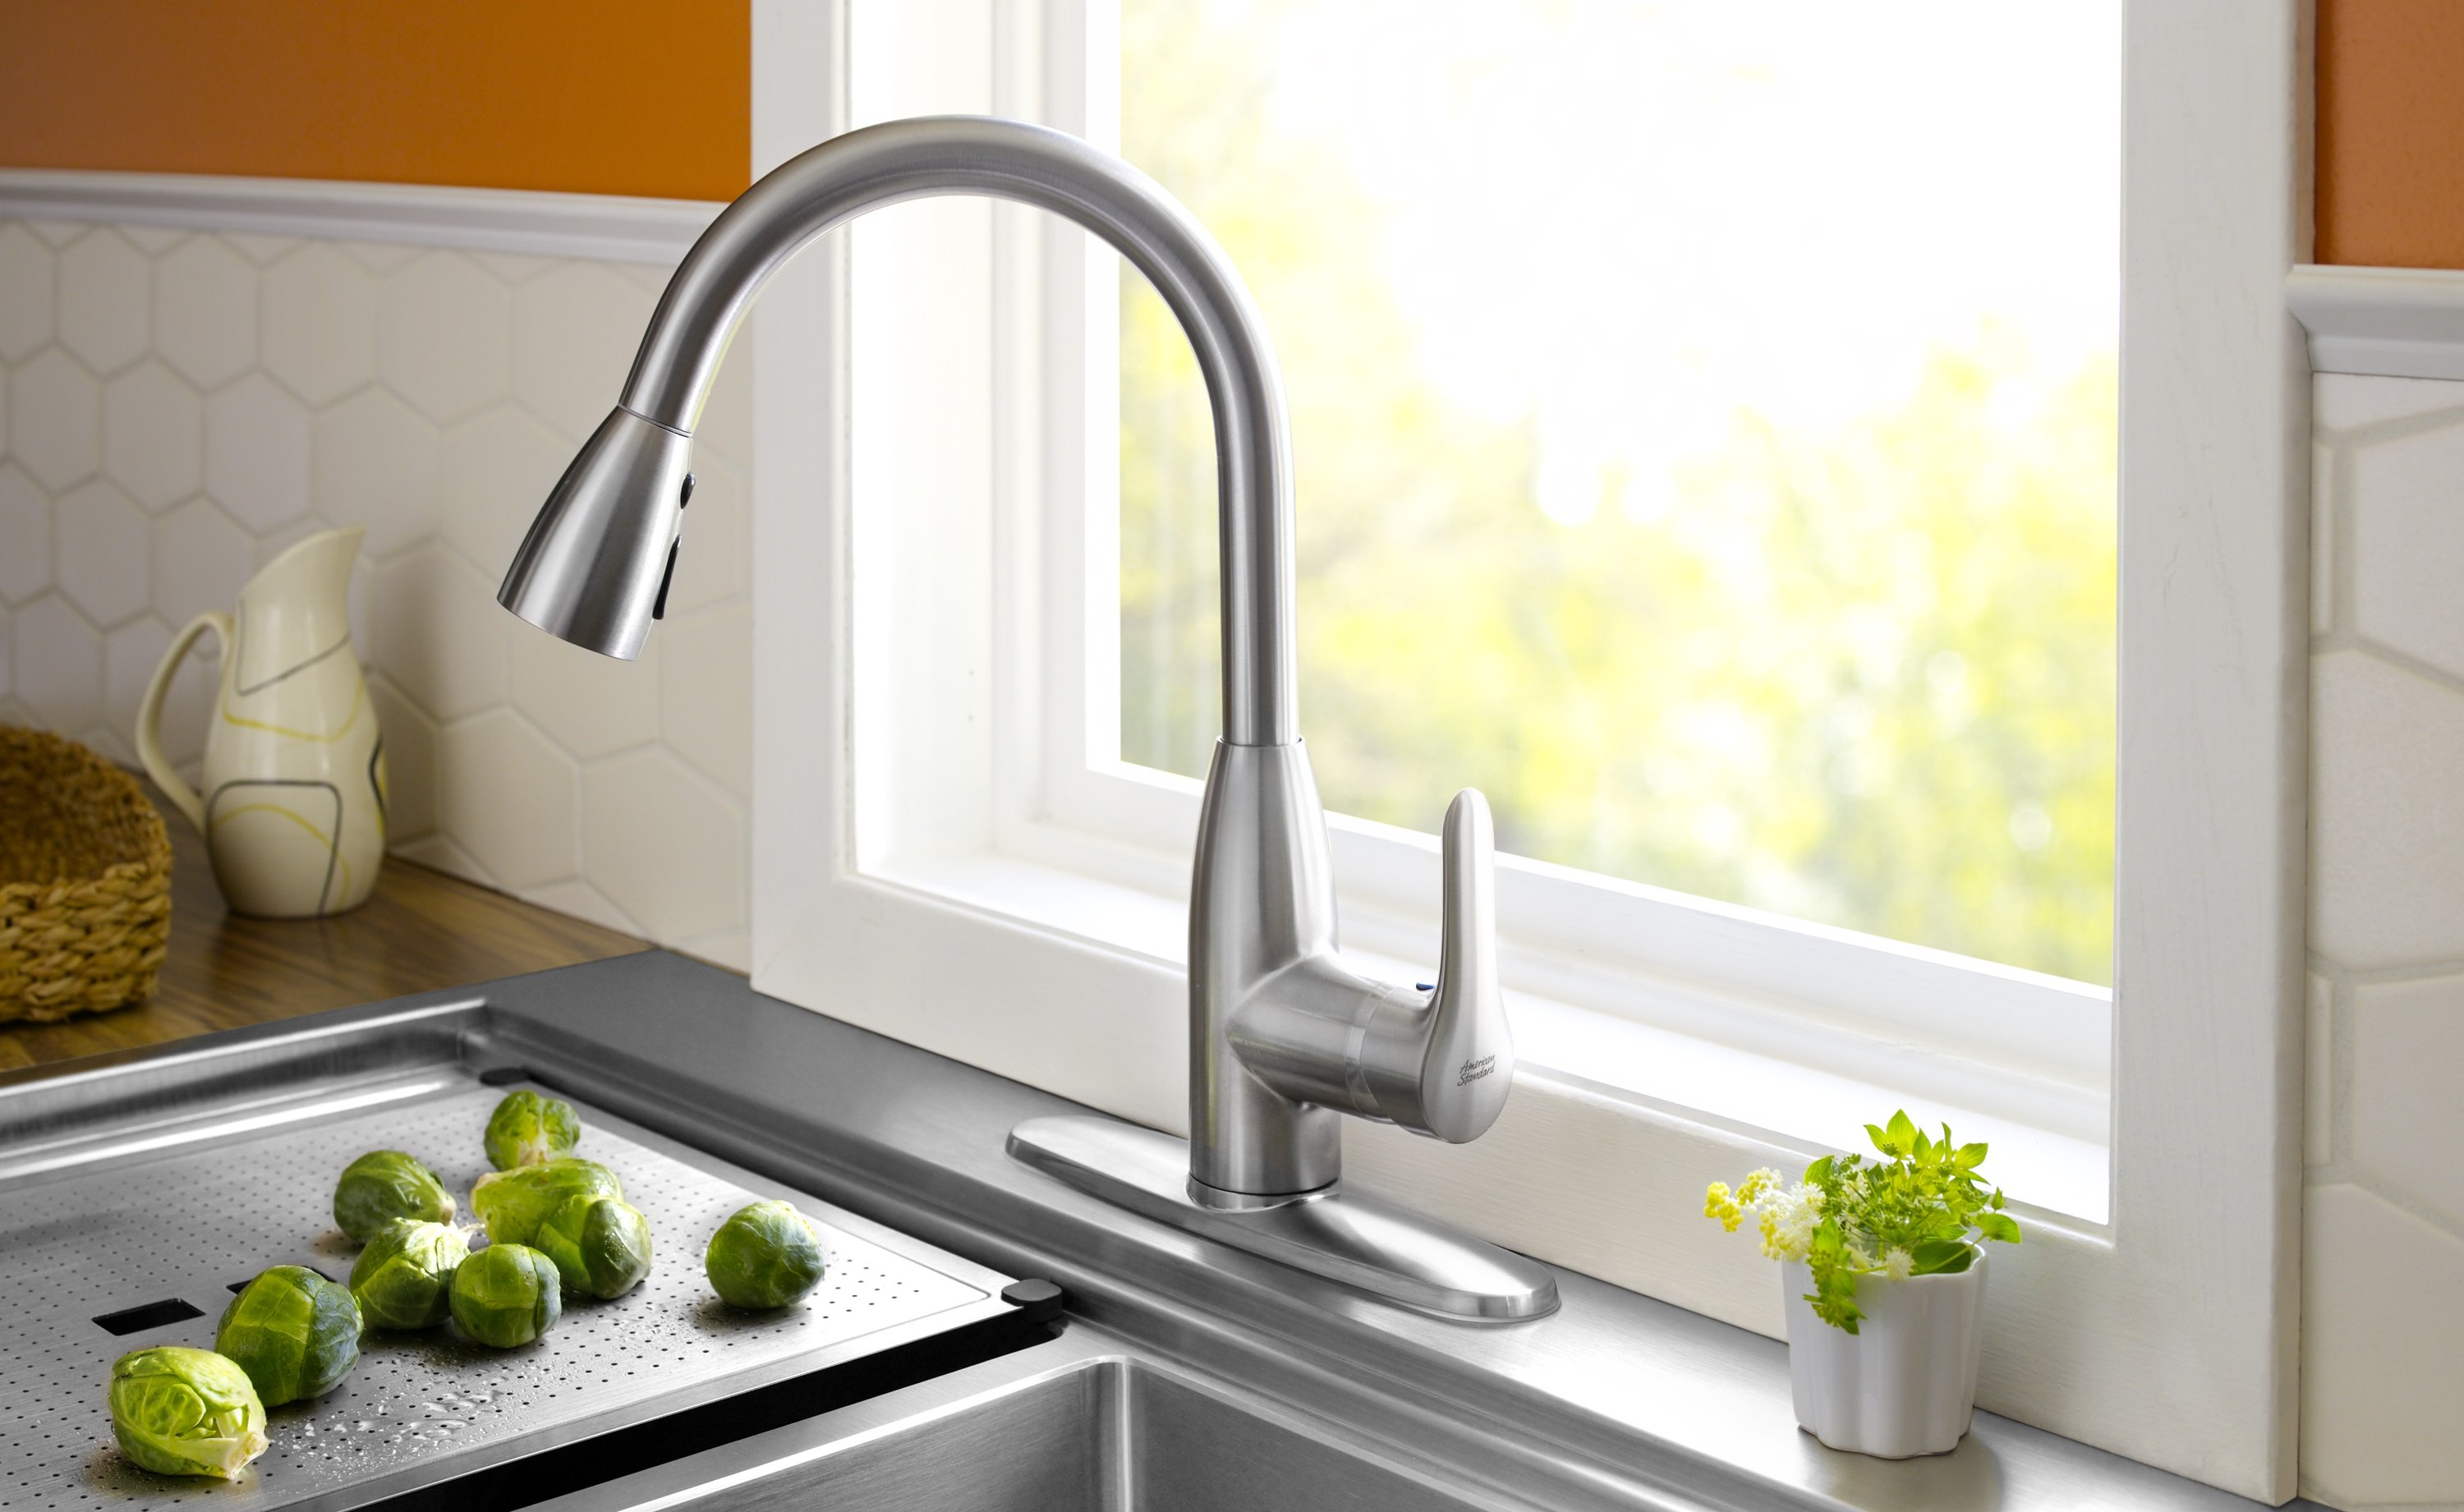 American Standard 4175 300 075 Colony Soft Pull Down Kitchen Faucet Stainless Steel Touch On